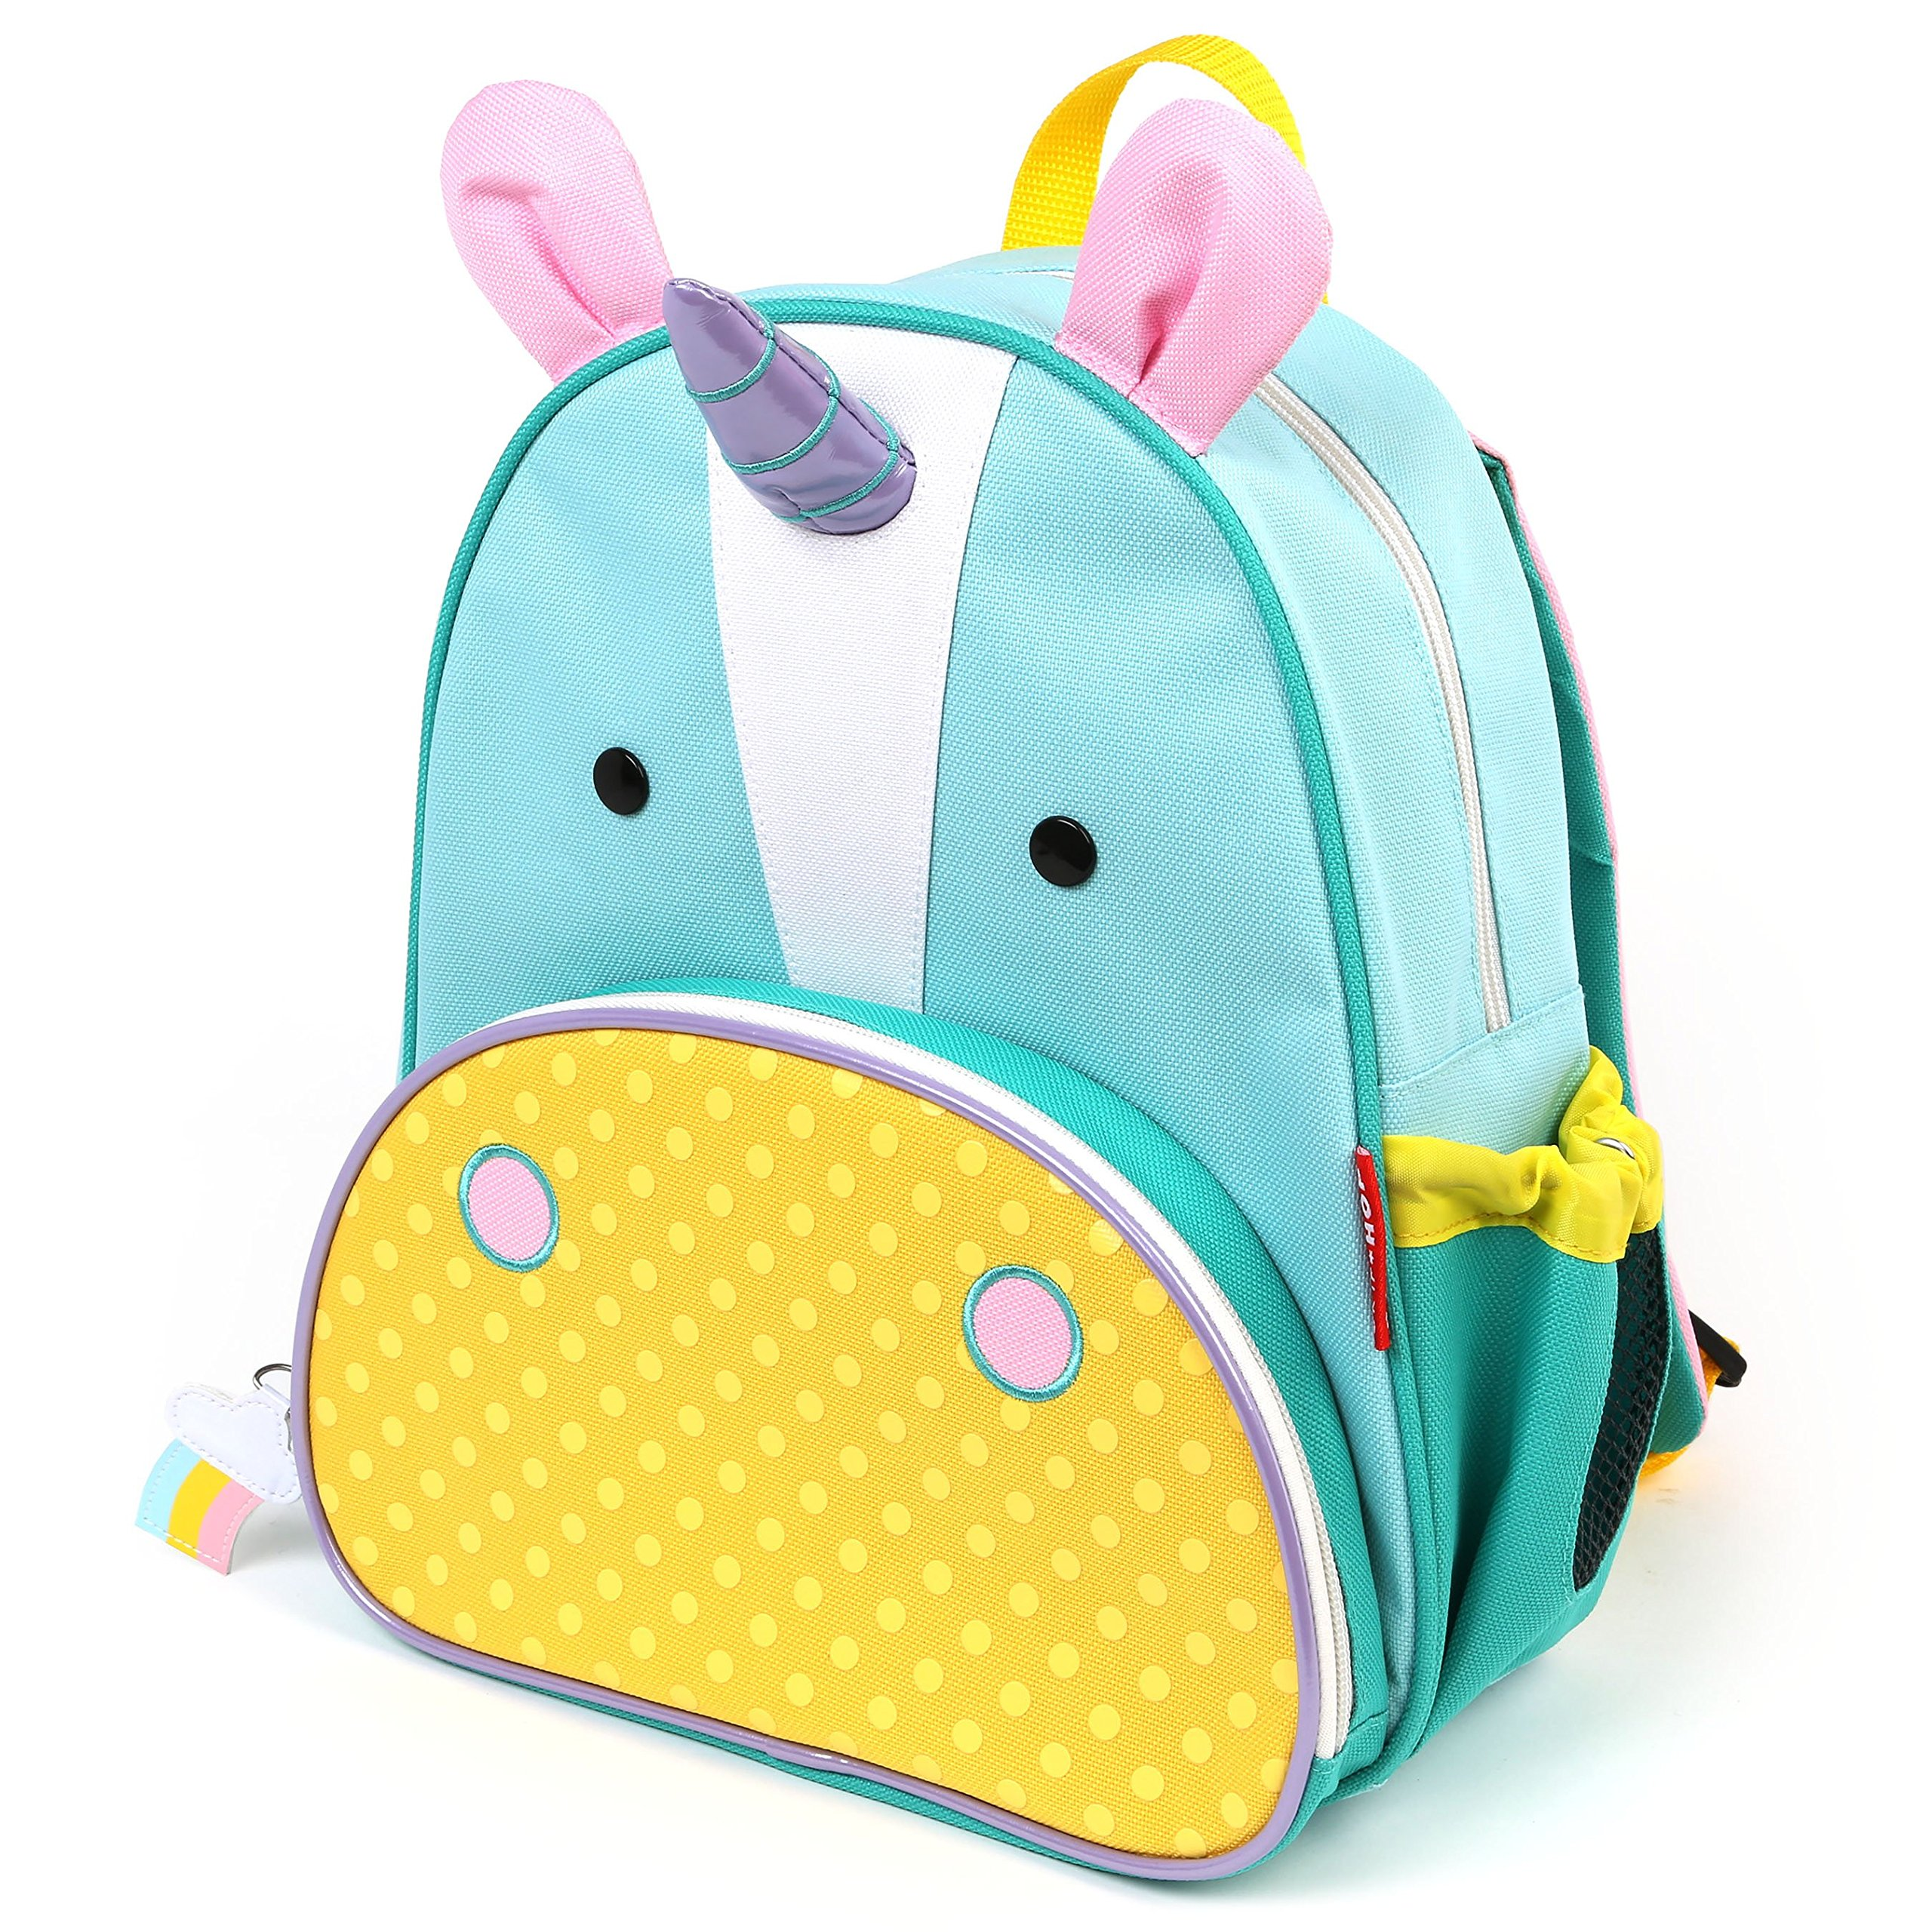 Skip Hop Zoo Insulated Toddler Backpack Eureka Unicorn, 12'' School Bag,